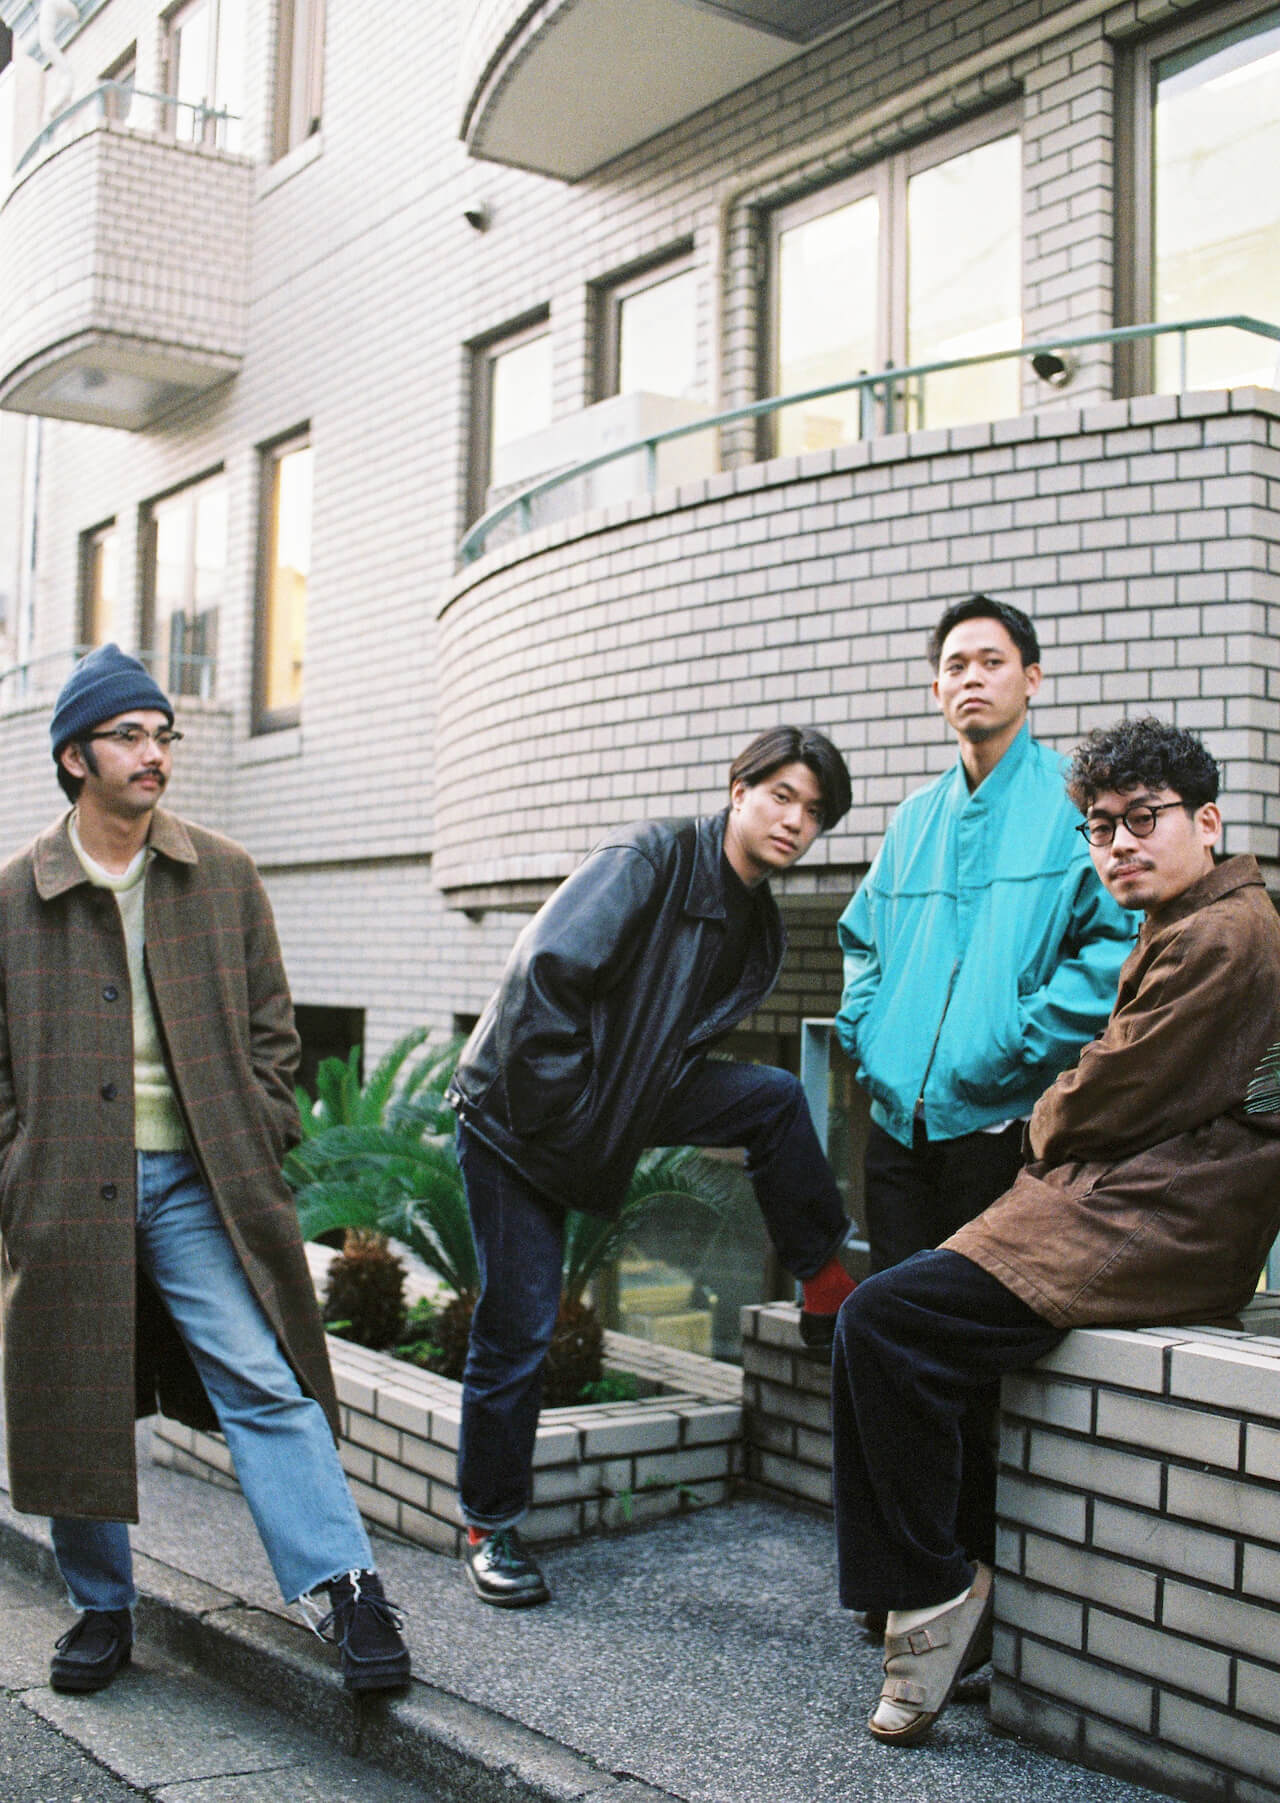 Yogee New Wavesが『to the MOON e.p.』に込めた想いと国境を超えた先にあるもの interview-yogee-46